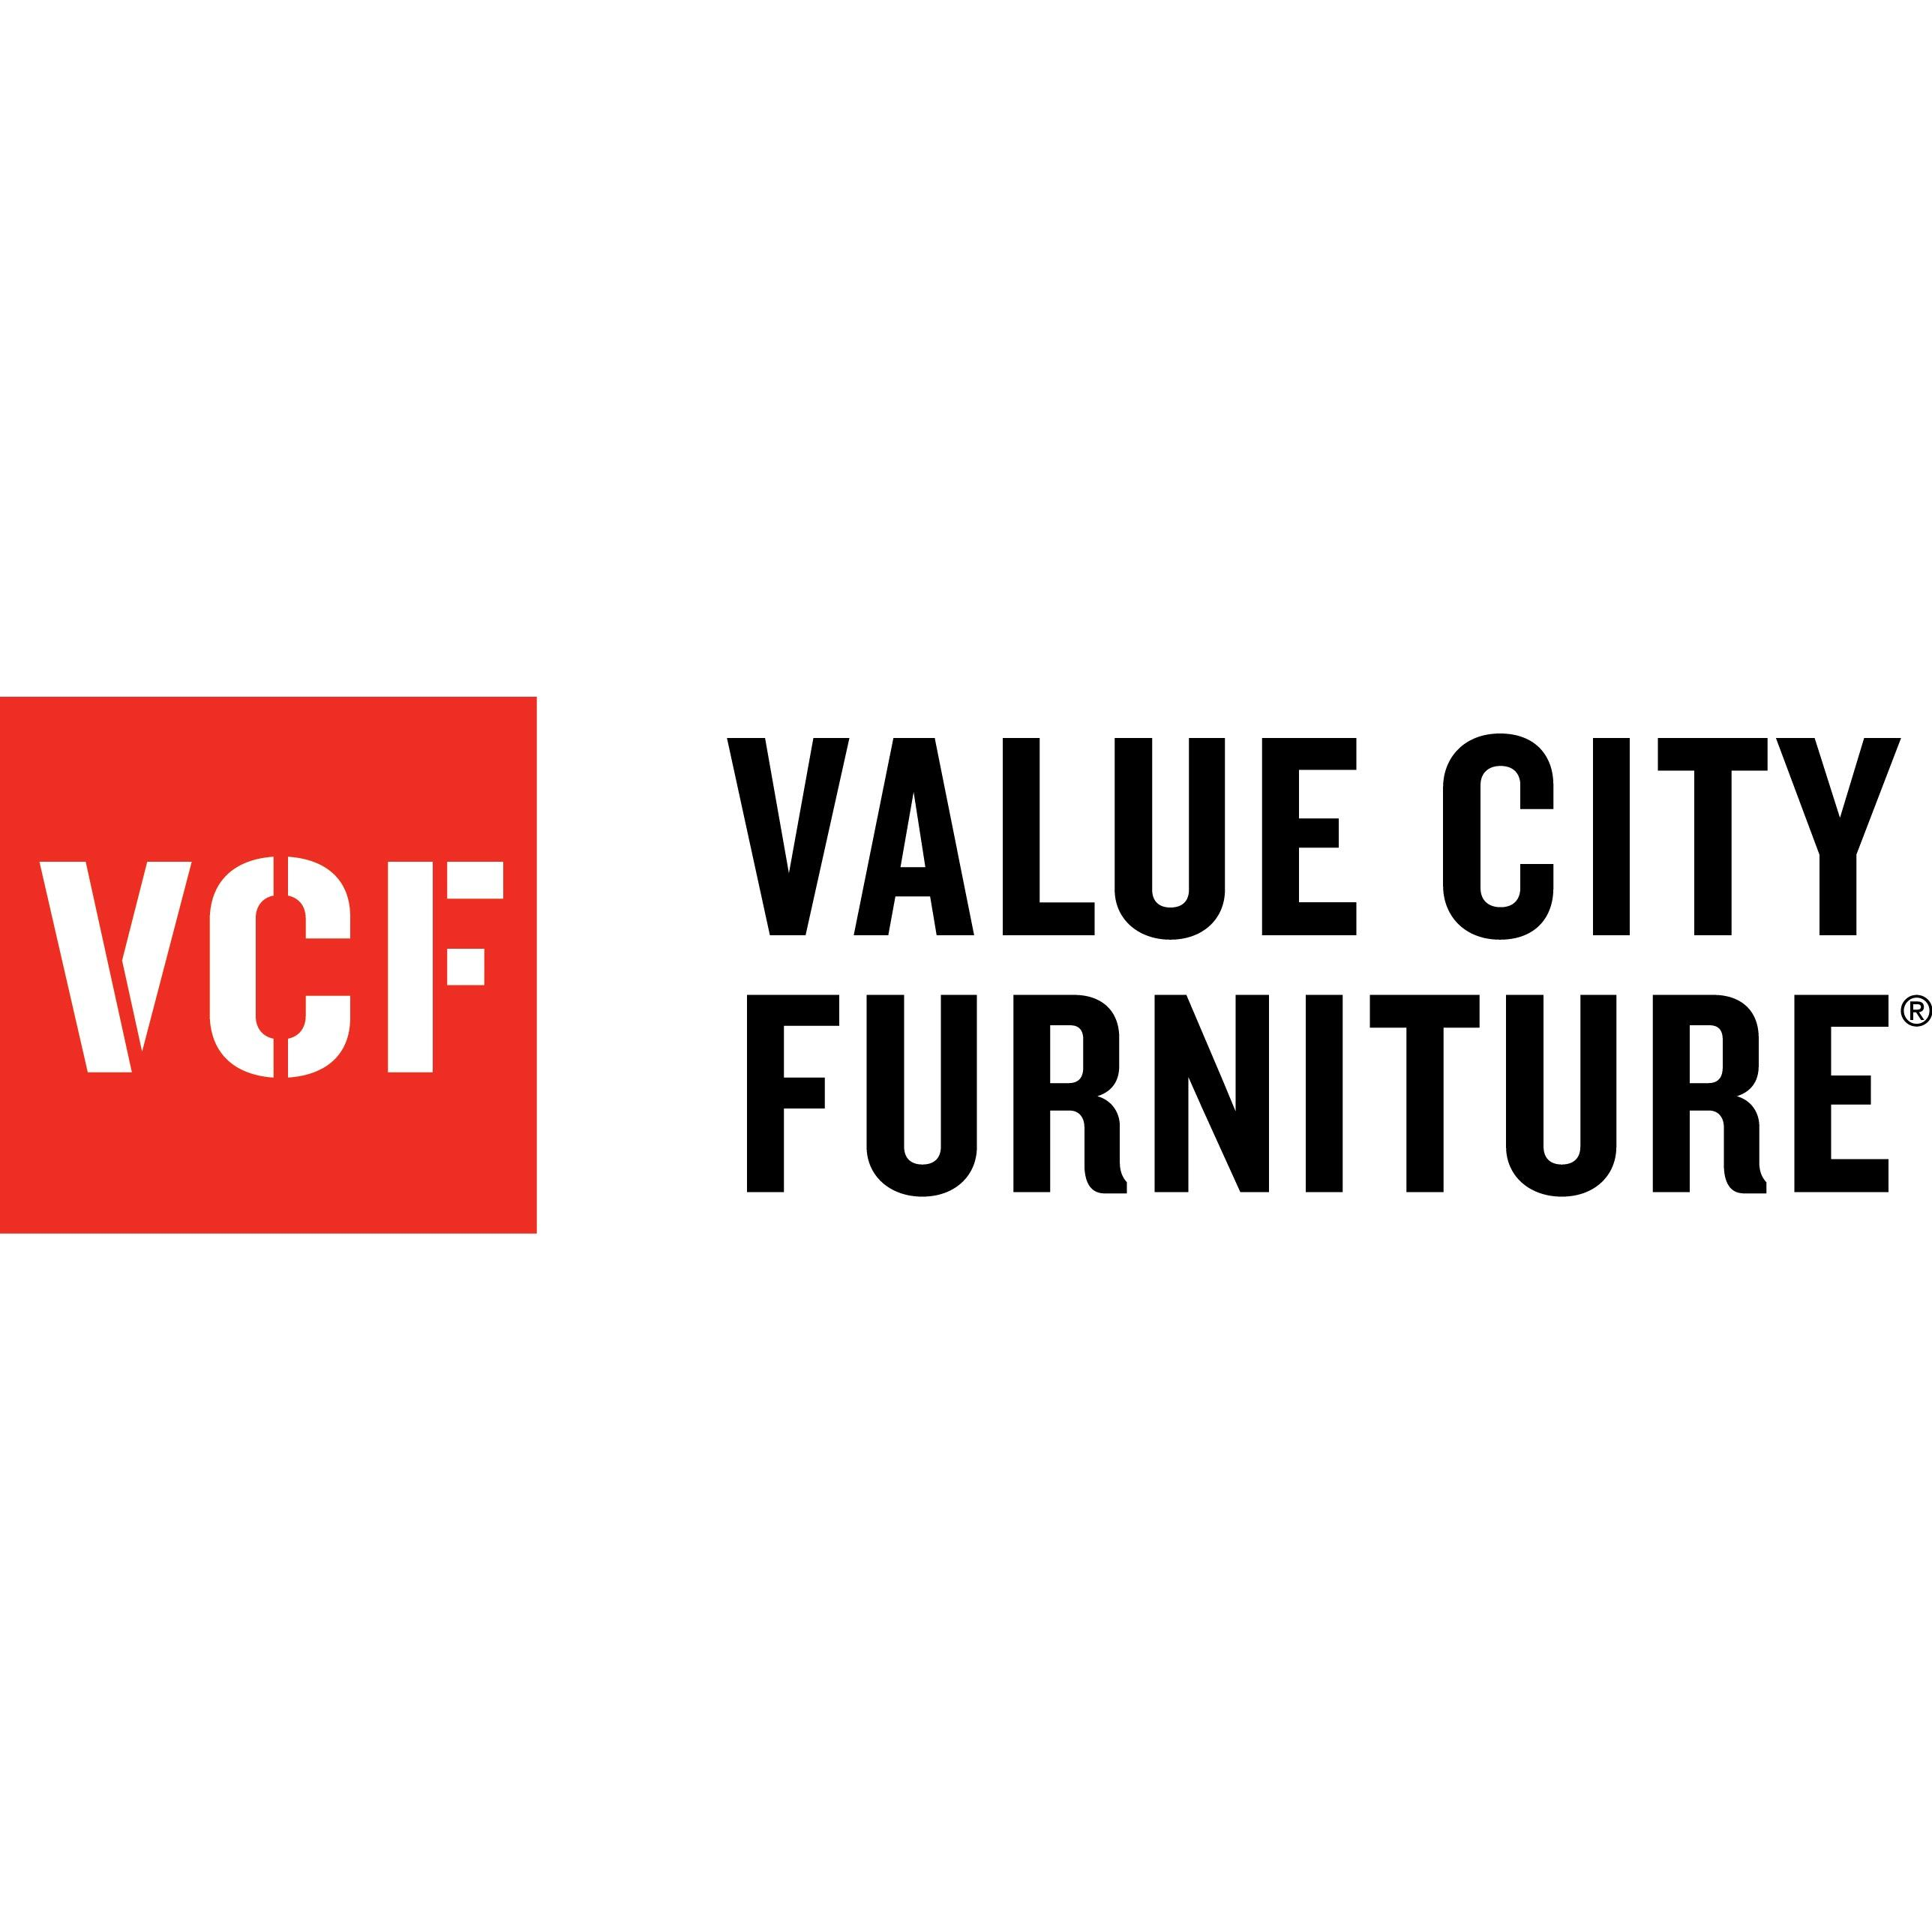 Value City Furniture 5 Photos Stores Kalamazoo Mi Reviews